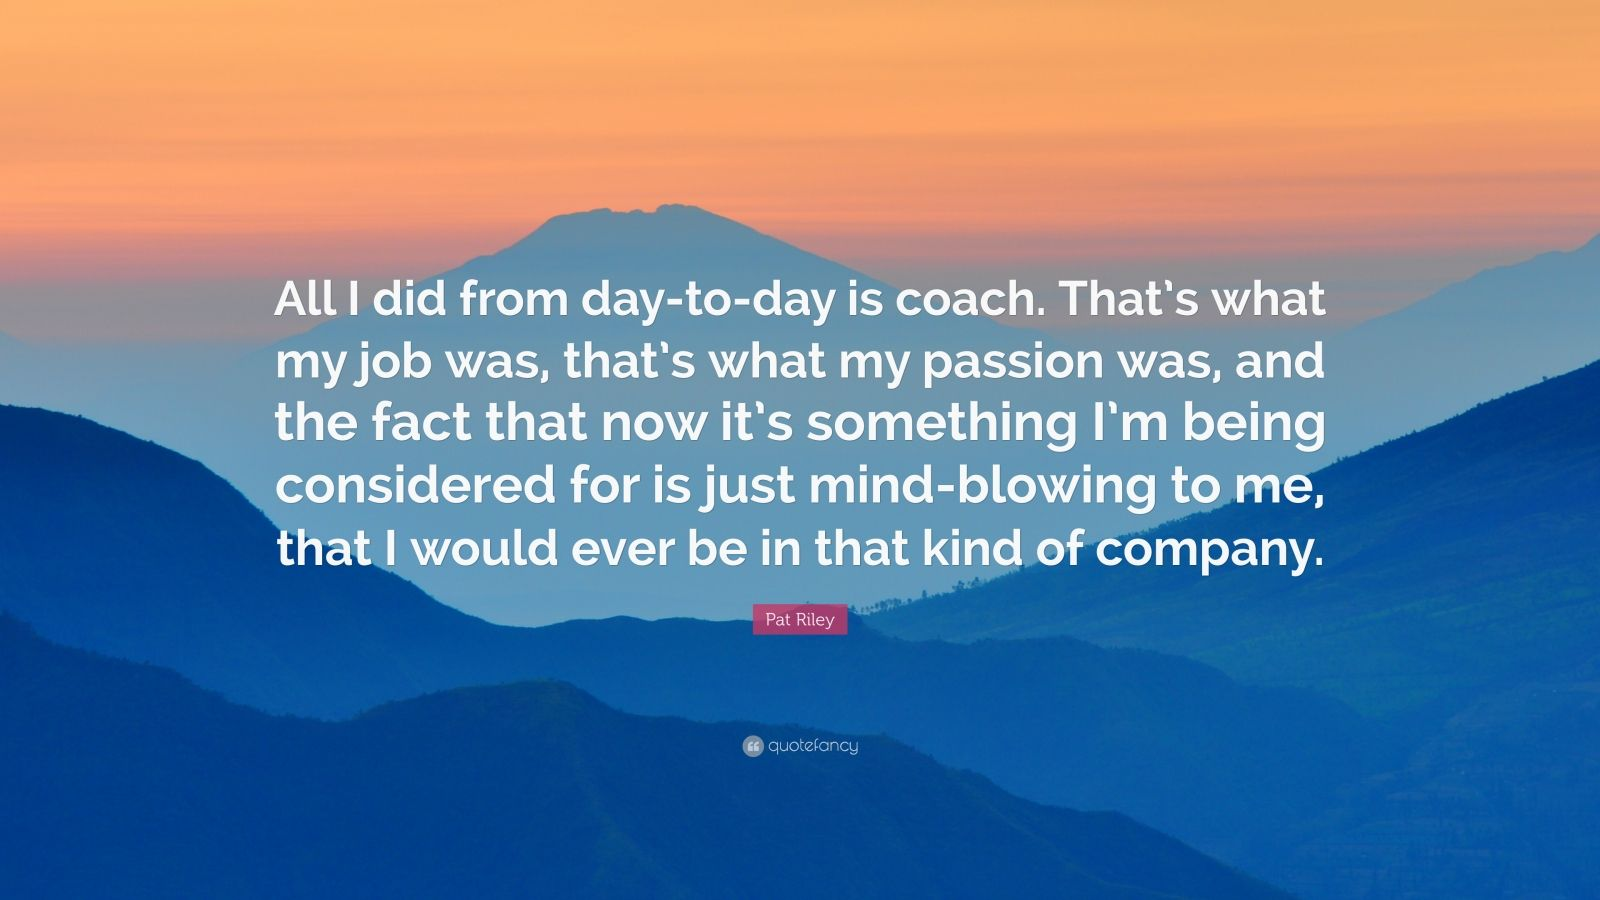 "Pat Riley Quote: ""All I did from day-to-day is coach. That's what my job was, that's what my passion was, and the fact that now it's something I'm being considered for is just mind-blowing to me, that I would ever be in that kind of company."""